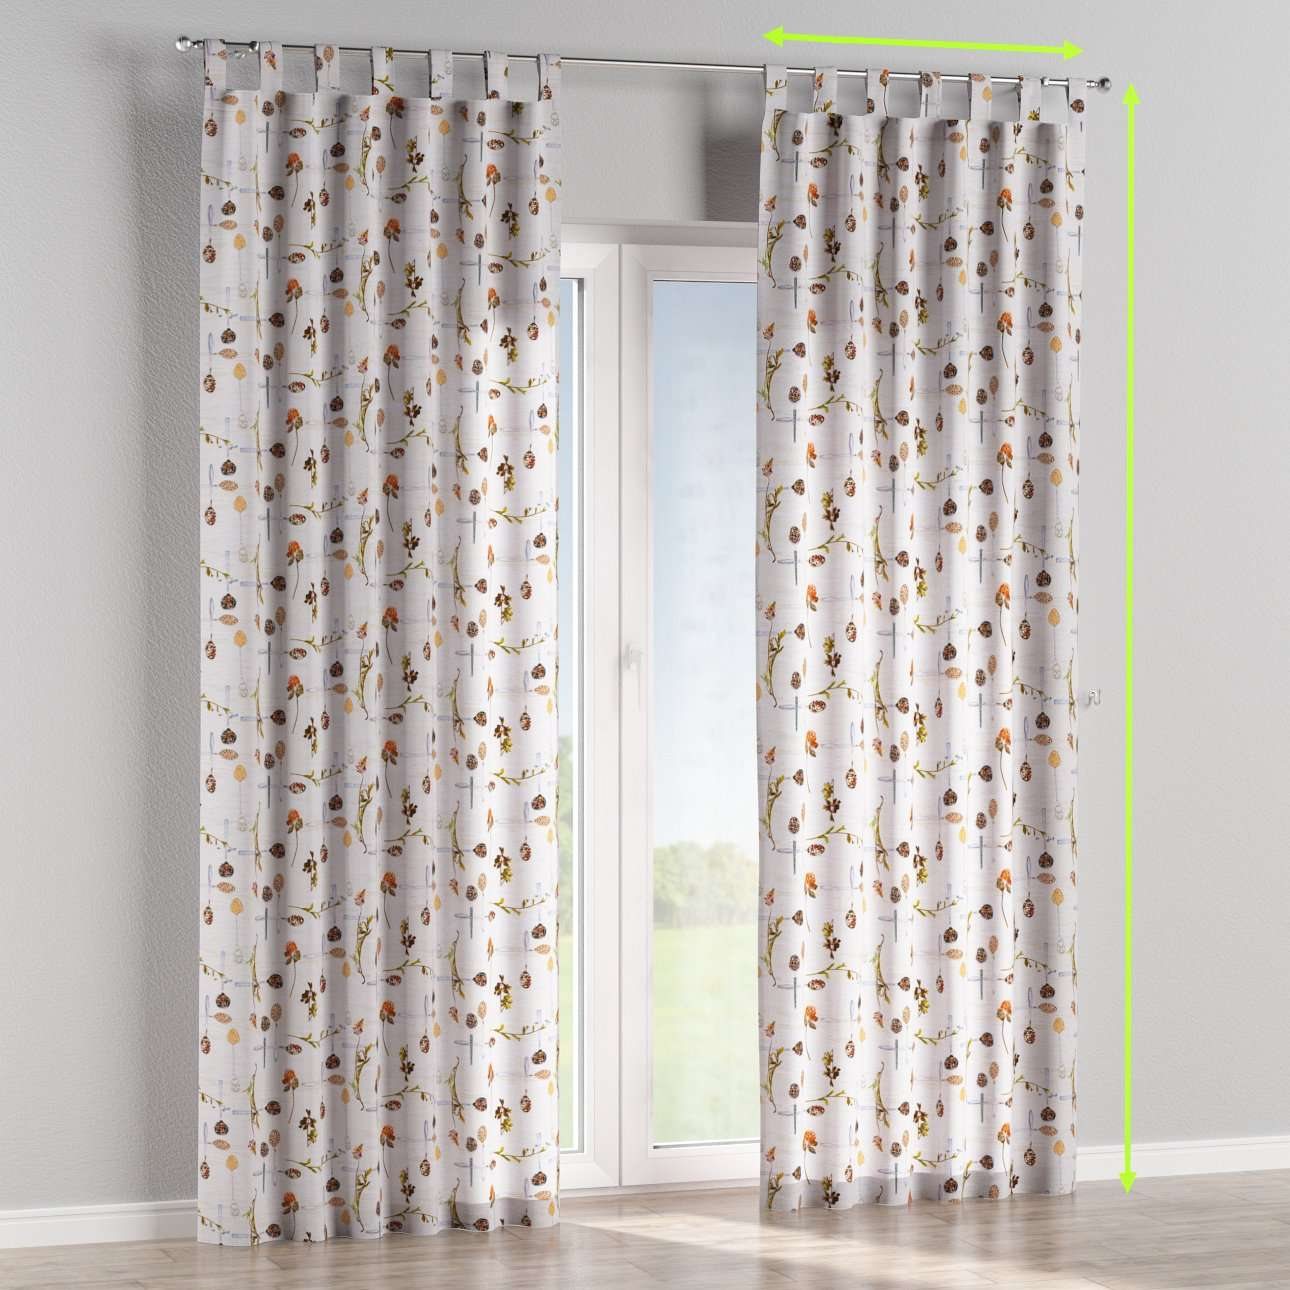 Tab top lined curtains in collection Flowers, fabric: 140-11